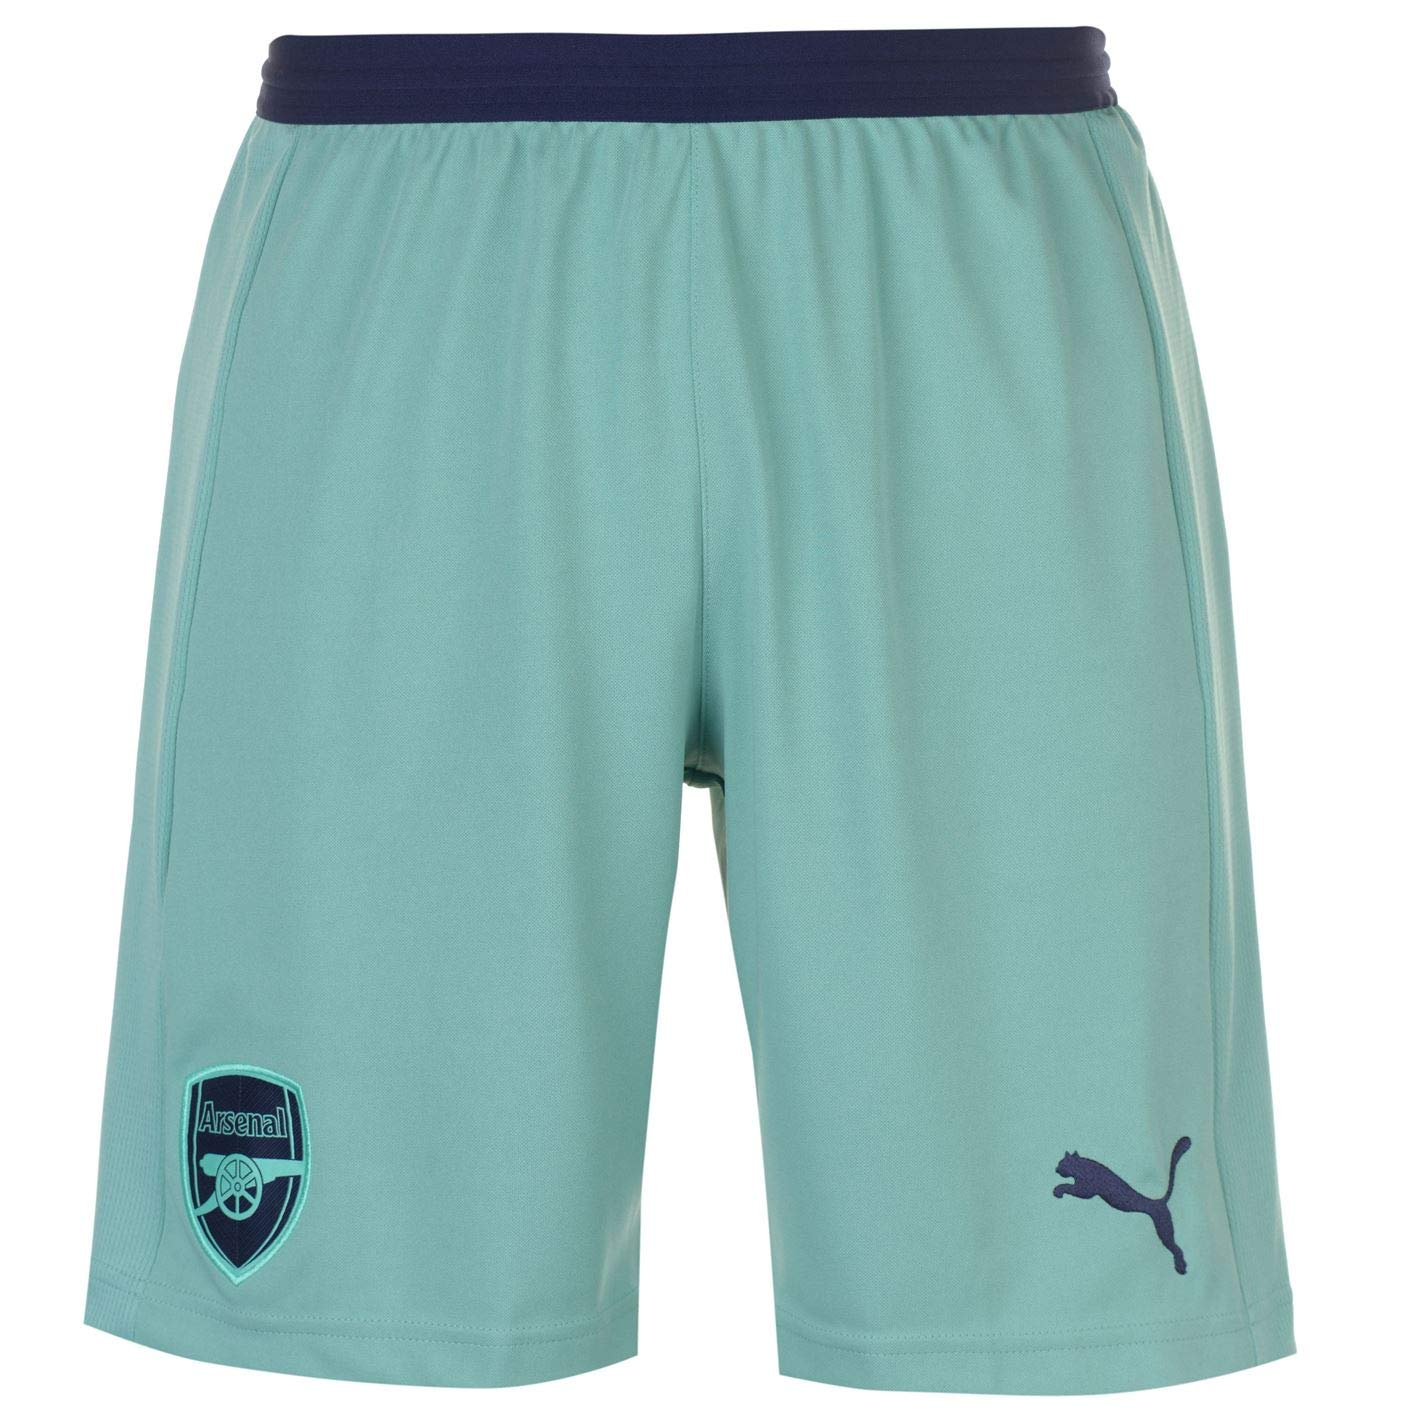 PUMA Arsenal FC Short Replica with Inner Slip - Pants Hombre